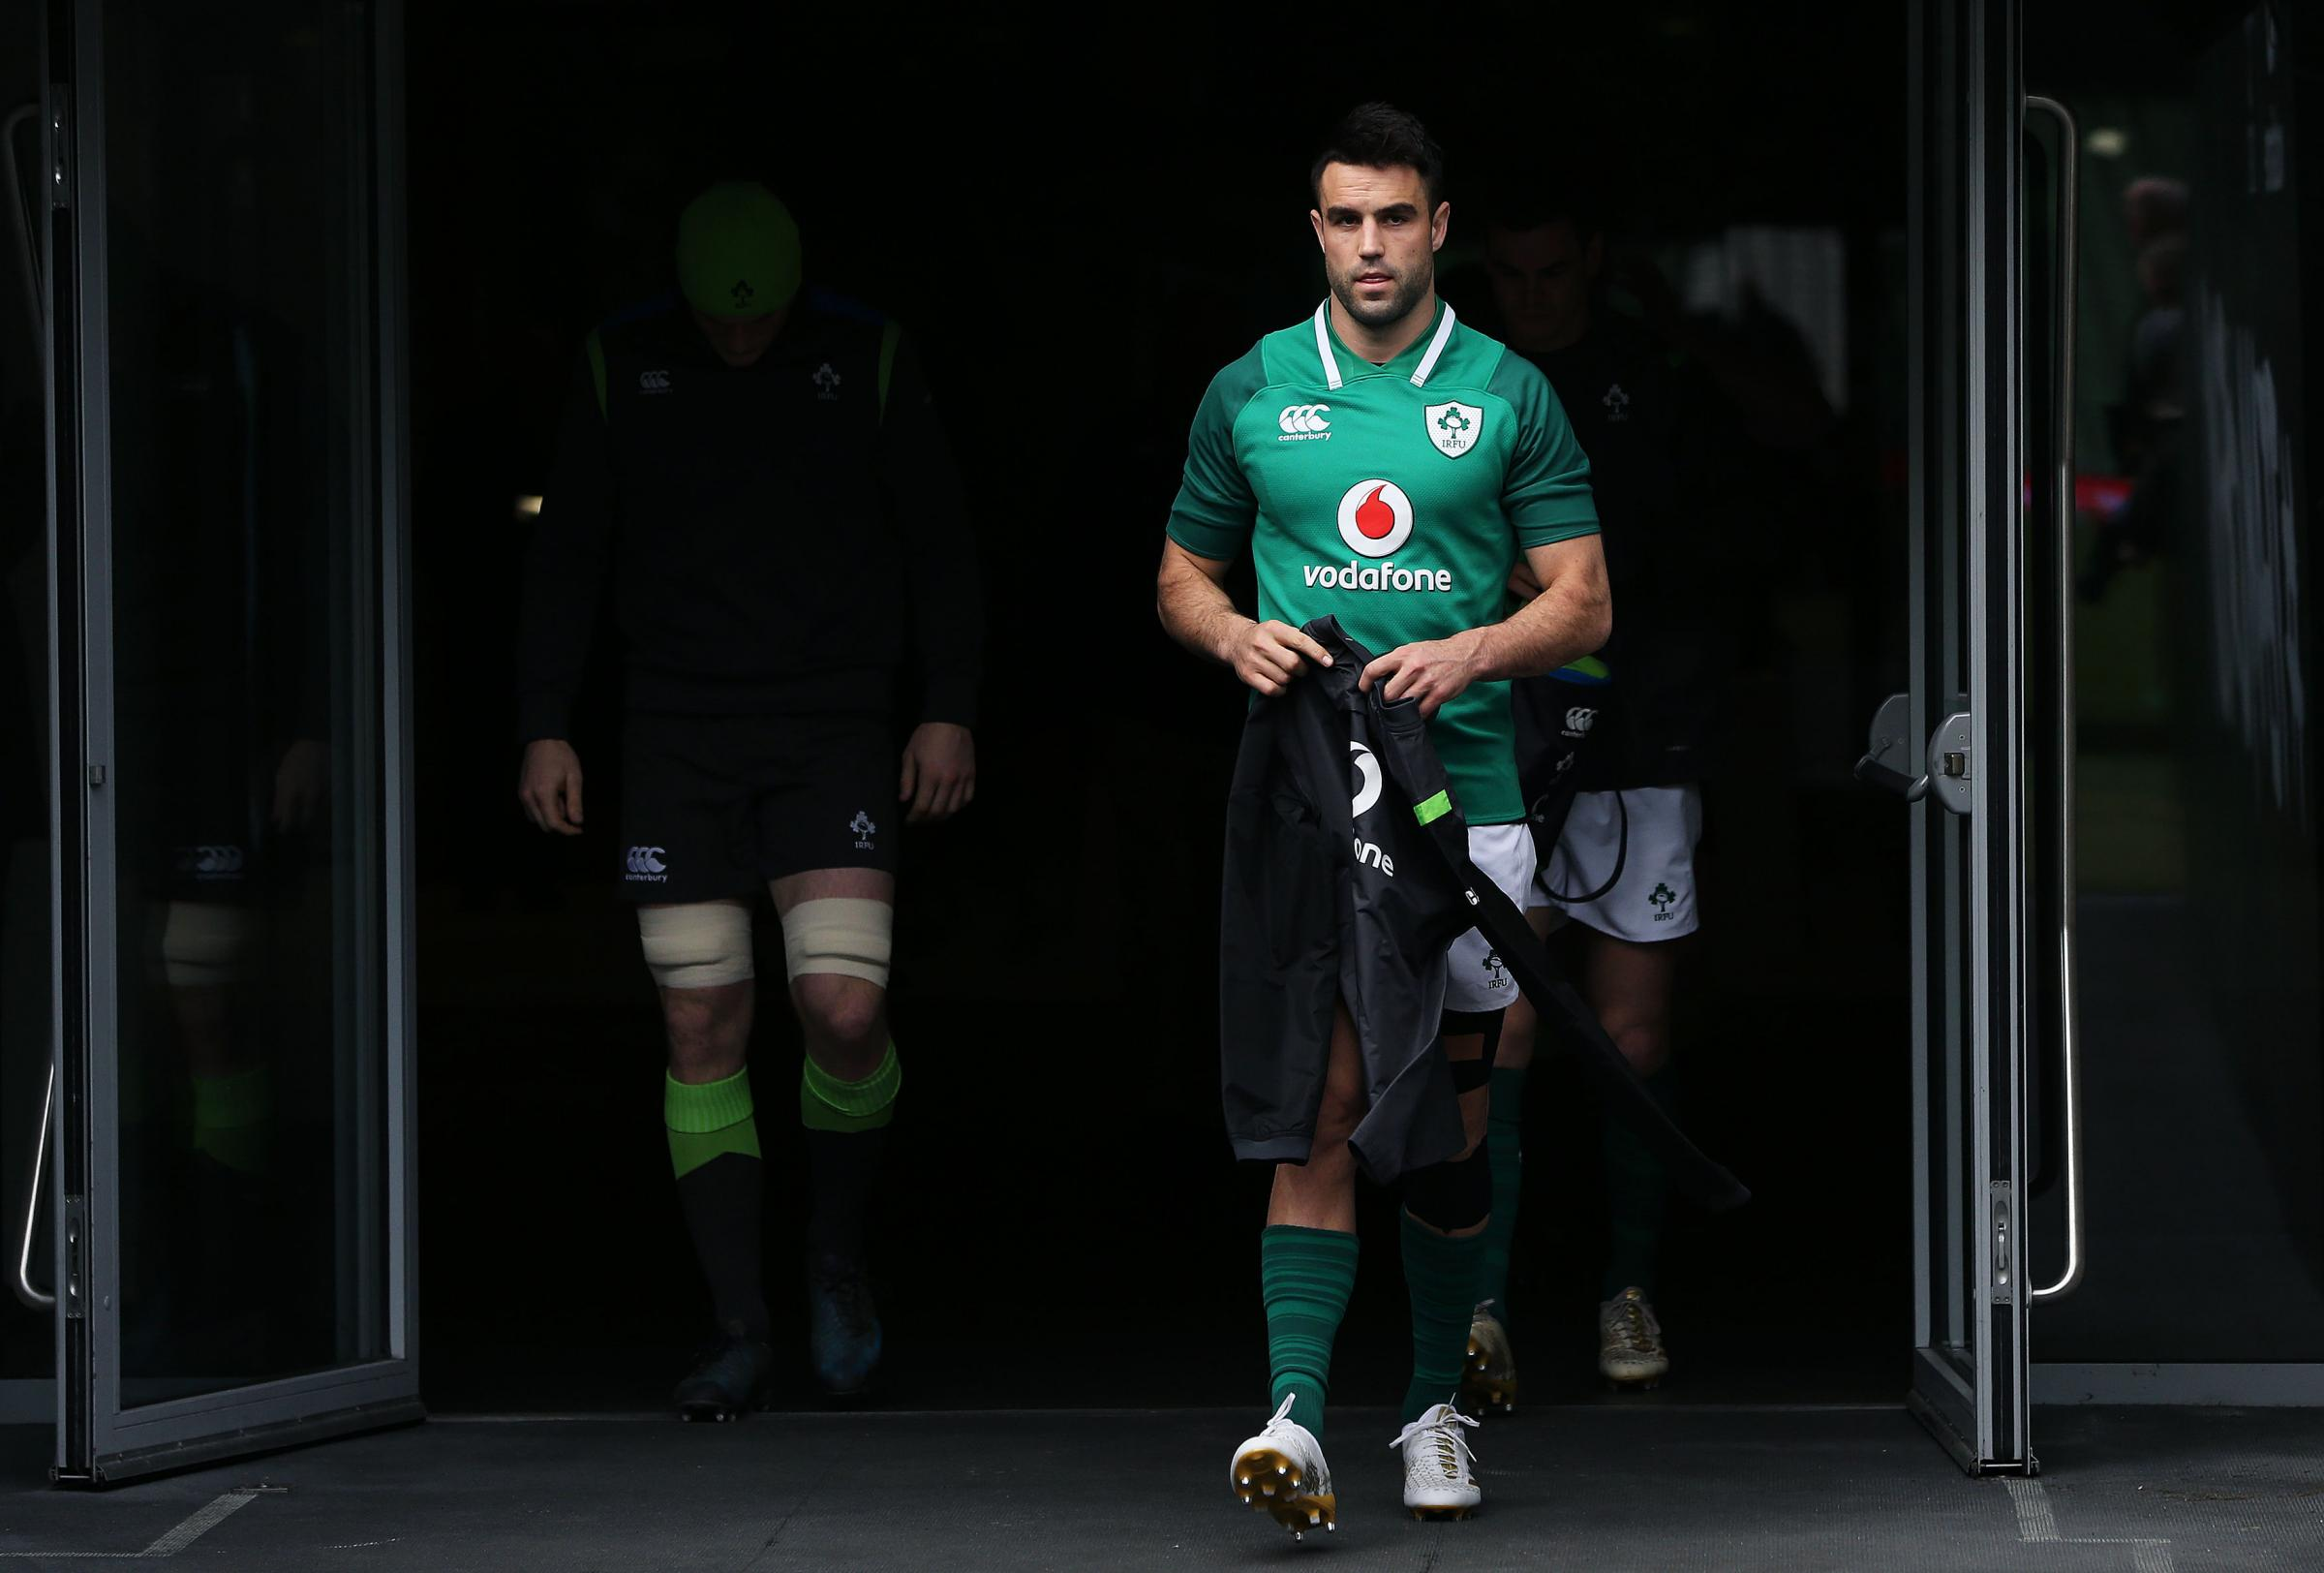 Scotland hope Ireland's Conor Murray is in for a torrid afternoon at the Aviva Stadium